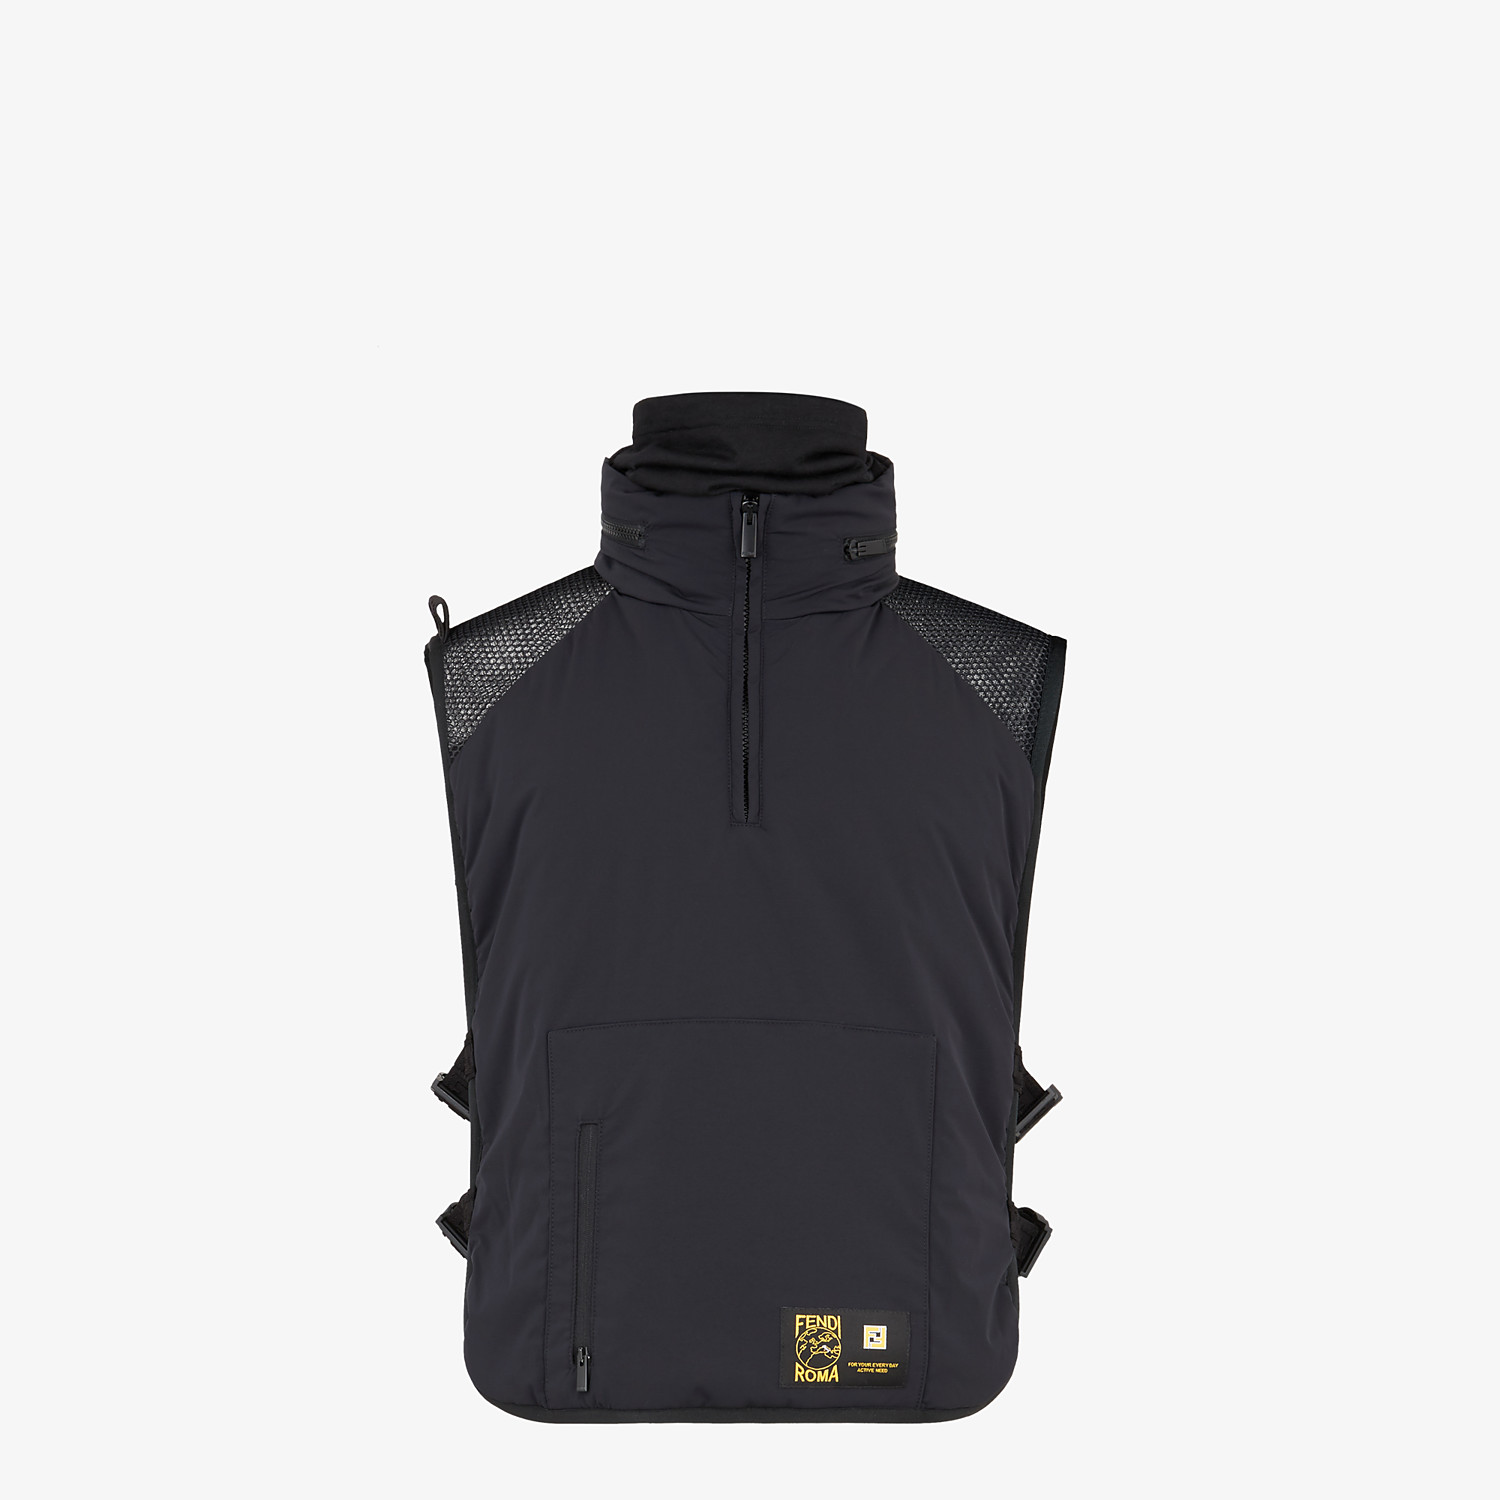 FENDI VEST - Black tech fabric bib - view 1 detail